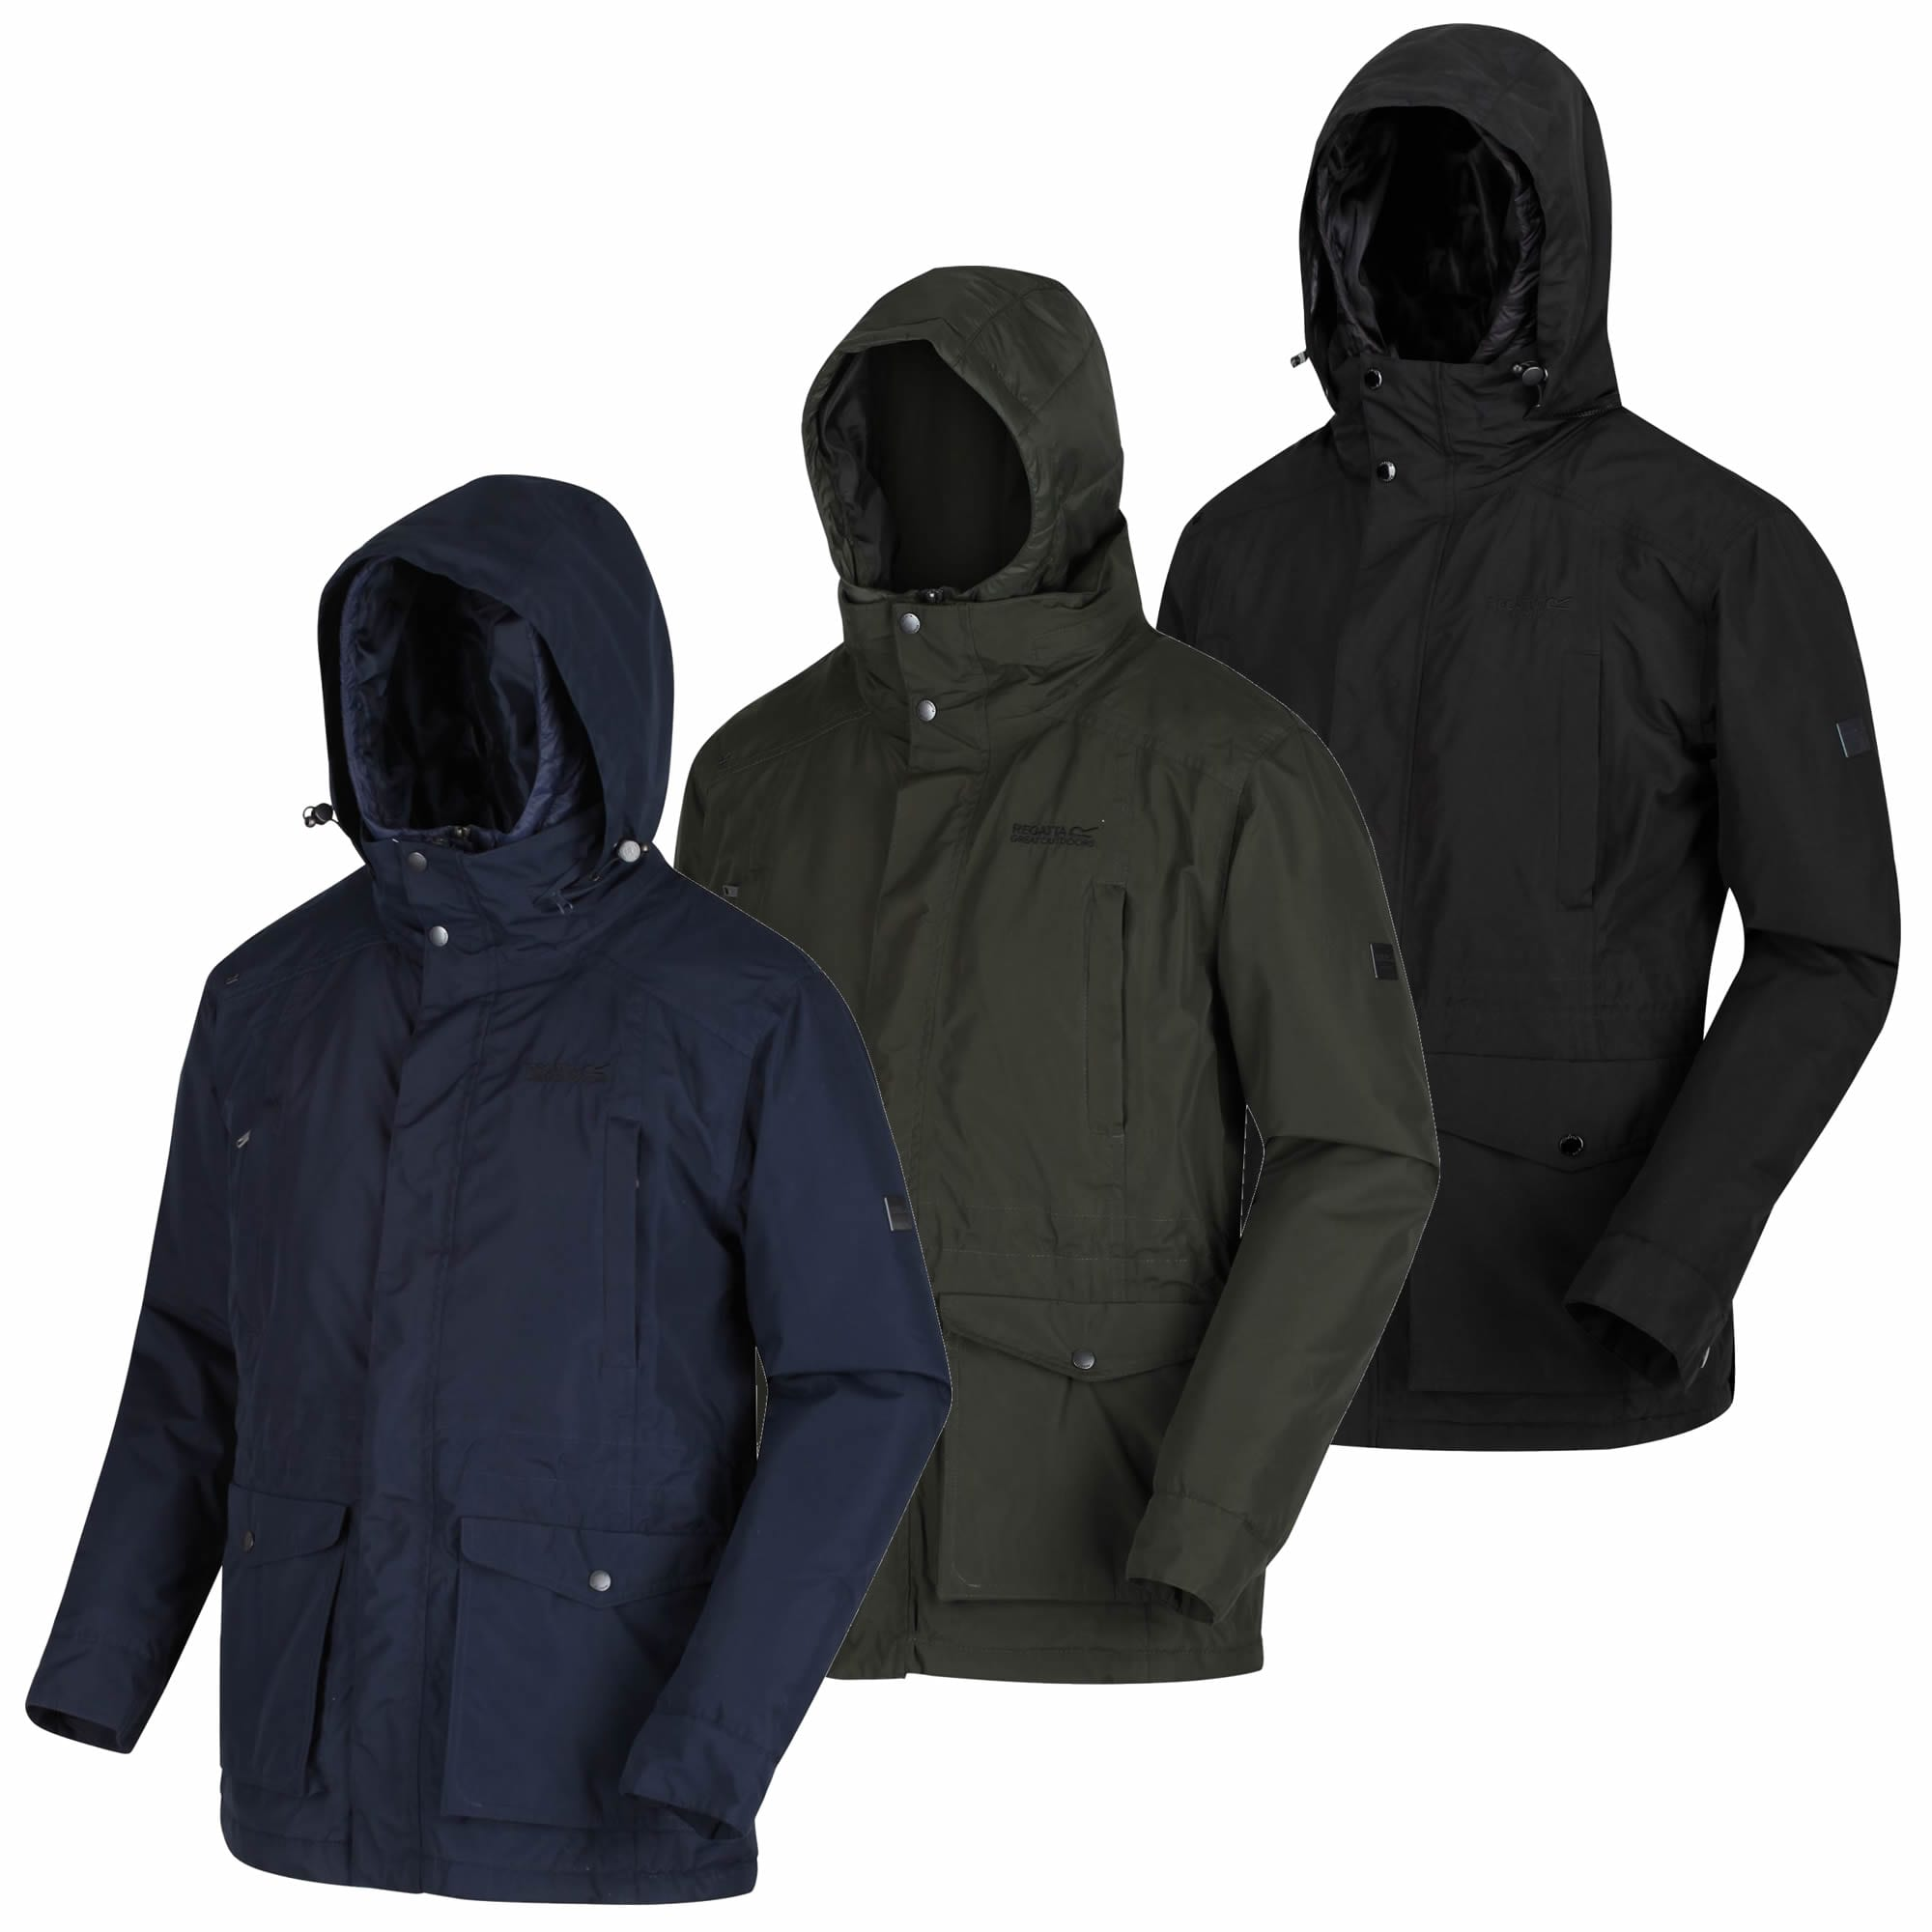 Regatta Mens Ranier Waterproof /& Breathable Thermo-guard Insulated Concealed Hooded Parka Jacket Waterproof